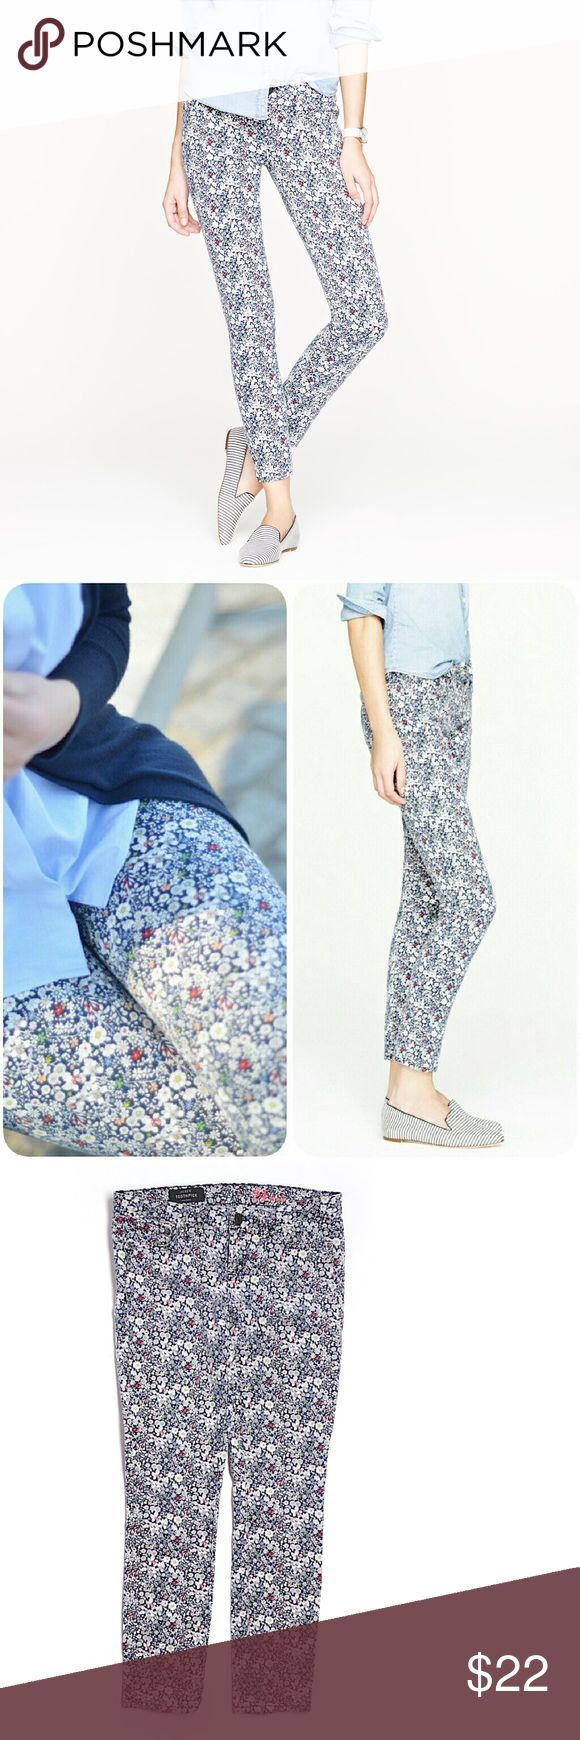 """Crew Liberty toothpick jean in June Meadow floral Gently used. Good shape. The same toothpick jean you know and love, crafted in a floral motif. Freshly picked from London's Liberty Art Fabrics , this hand-drawn print features a smattering of exotic flowers from the famed Abbey Gardens, located on the small island of Tresco off the coast of the UK. True to size. Sits lower on hips. Slim through hip and thigh, with a skinny, cropped leg. Cotton with a hint of stretch. 26"""" inseam. 7"""" rise. 30""""…"""